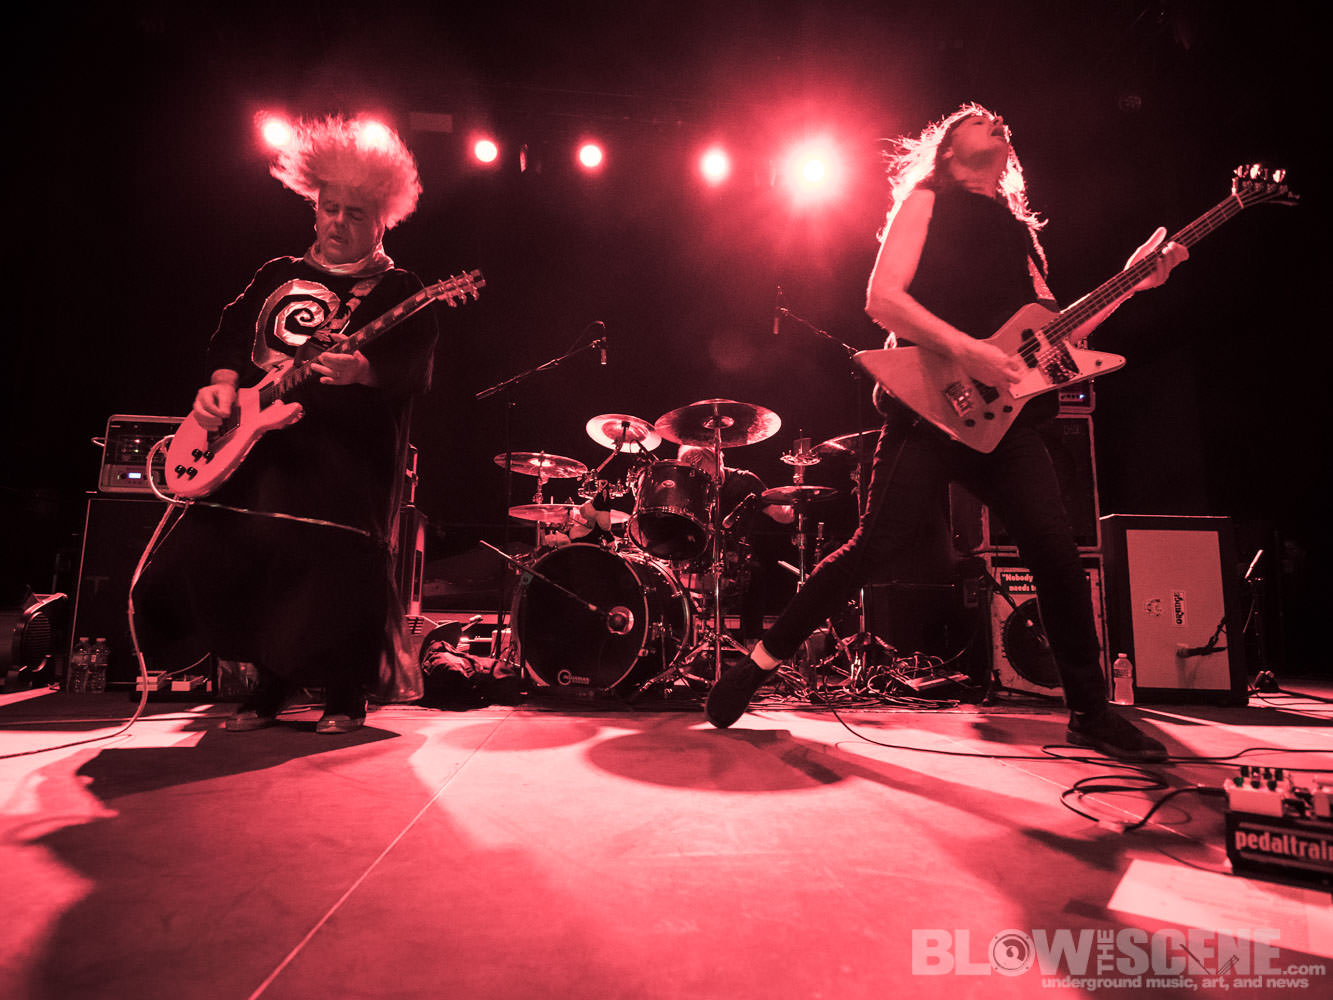 Melvins Philly E Factory on August 4th, 2017